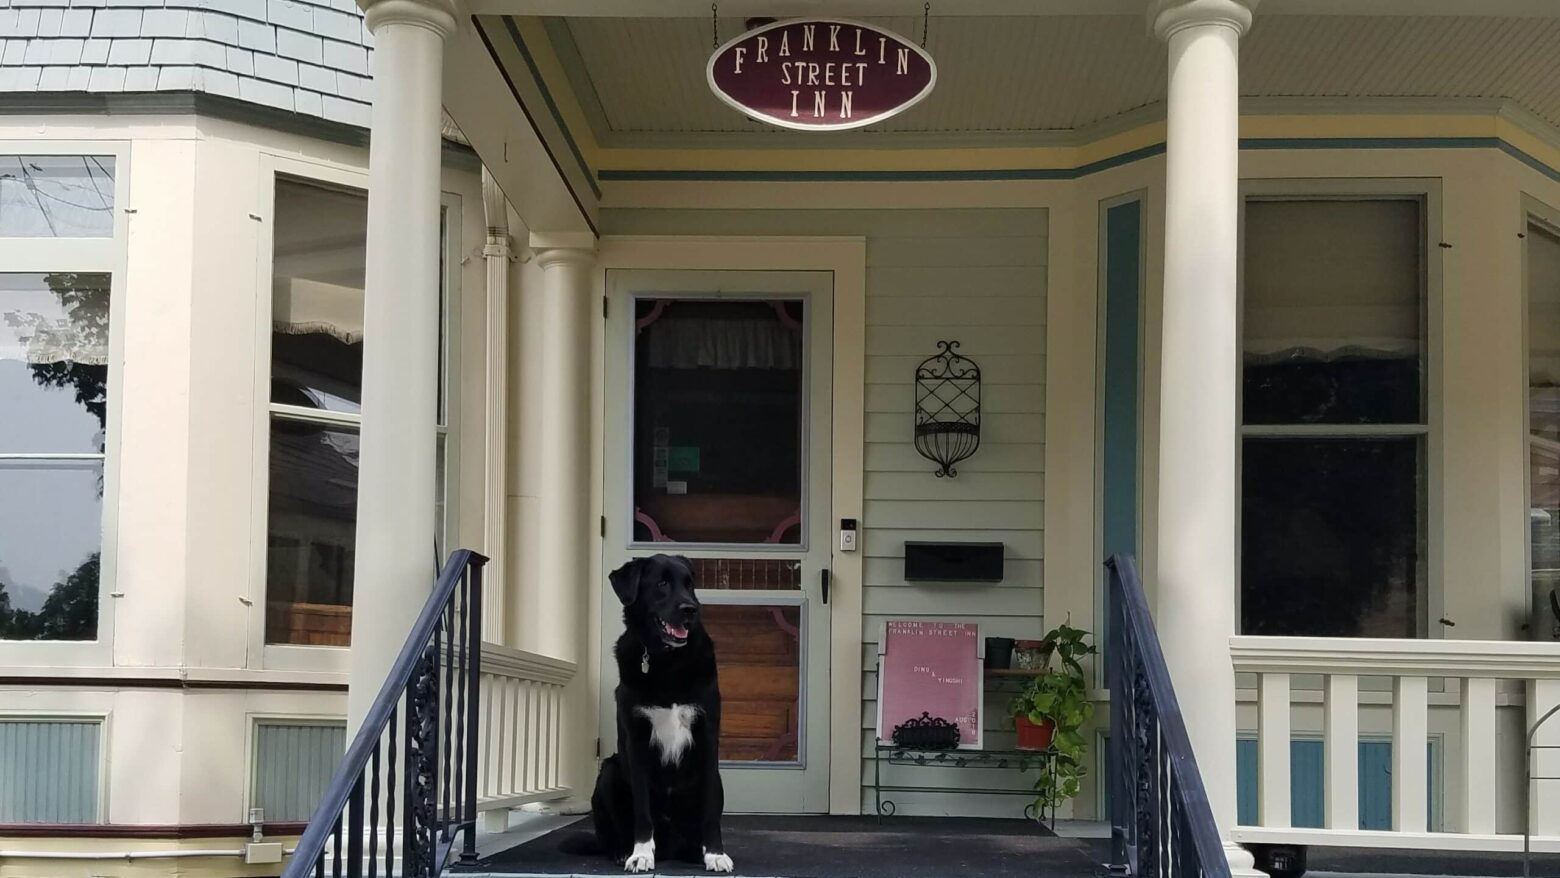 Large smiling black dog with white chest and white socks sits on Victorian home porch with front door in background. Looks like dog is waiting for someone while oval Franklin Street Inn sign hangs above dog.